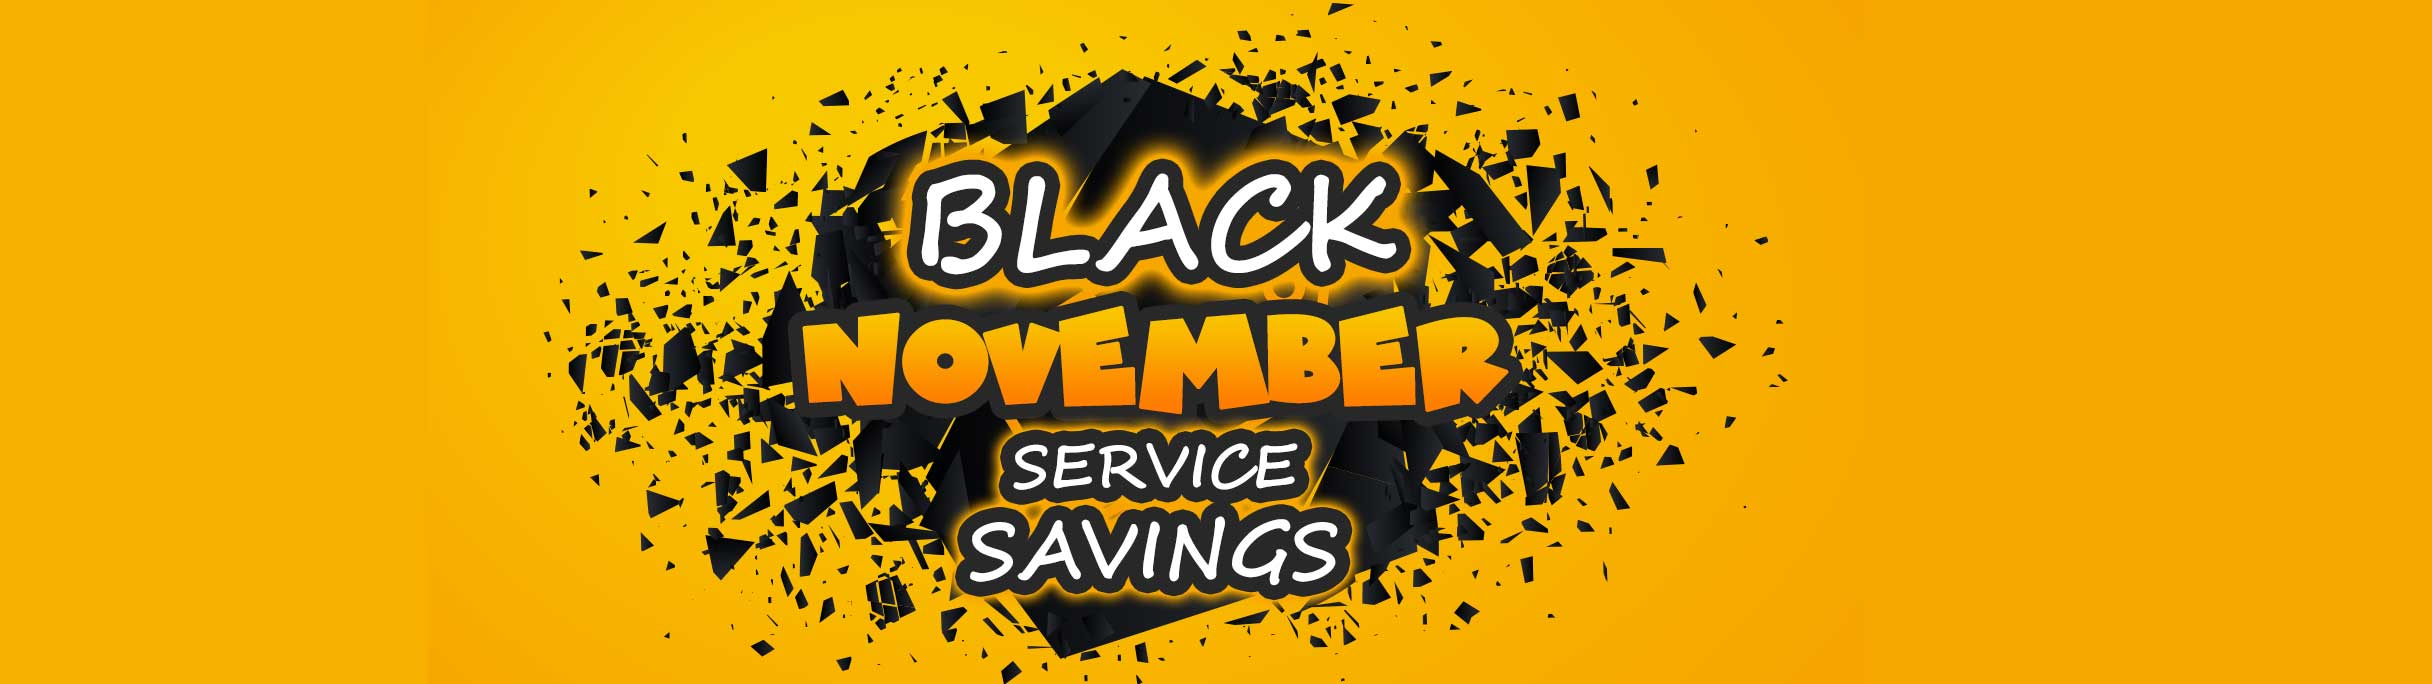 Barons Woodmead November savings